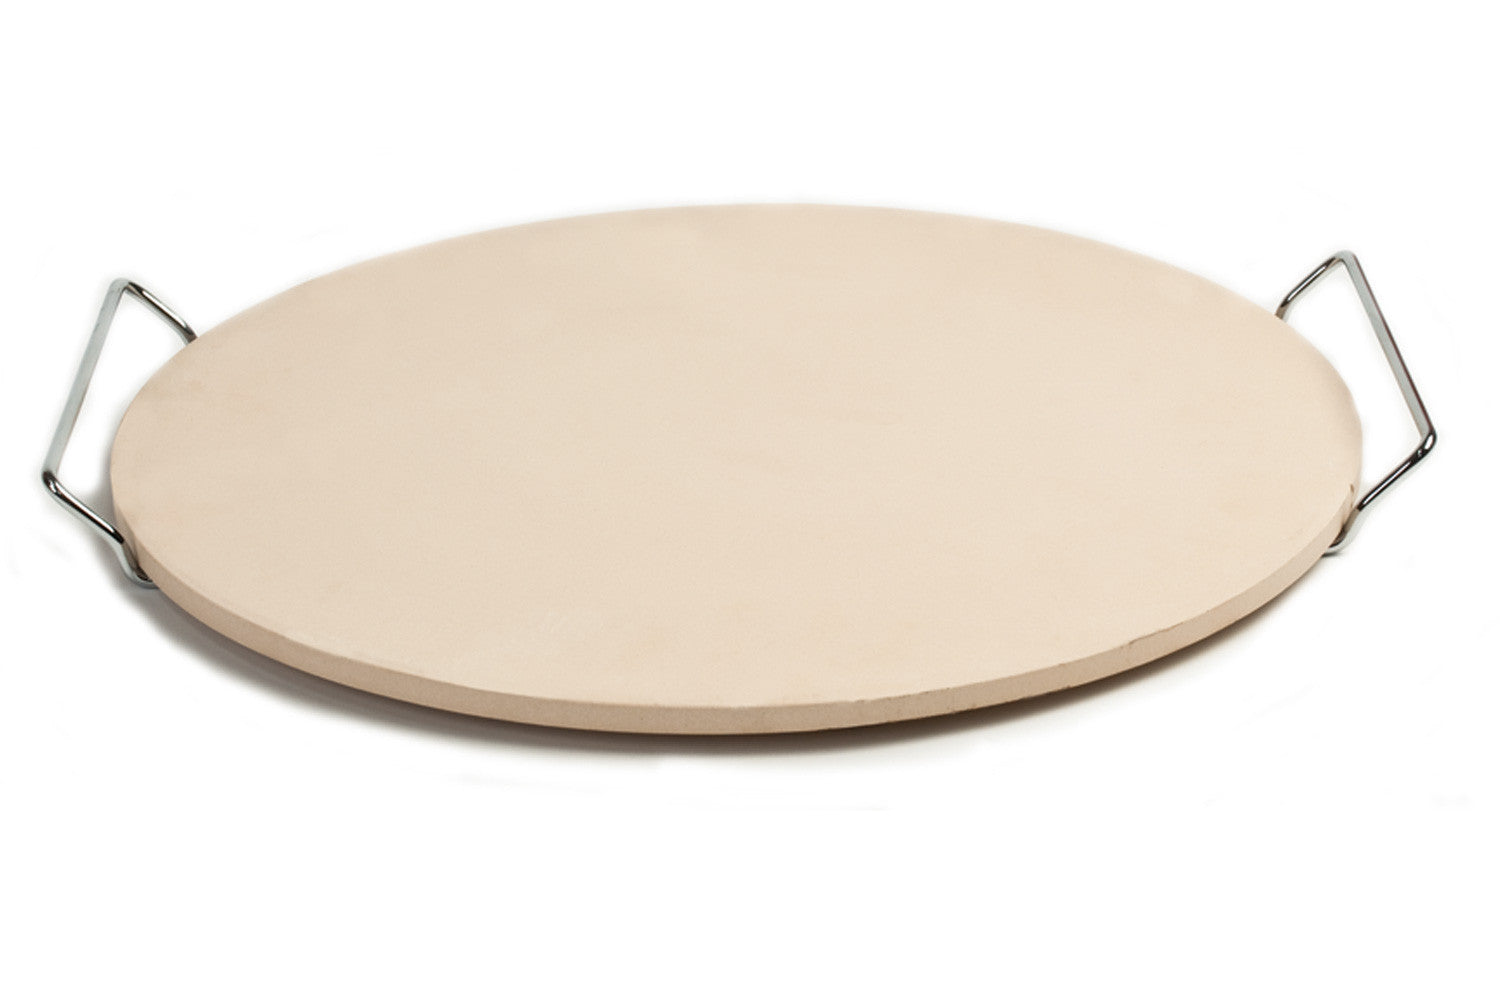 PC0002 15/' x 12.1/' Rectangle Ceramic Baking//Pizza Stone with Wire Frame handle